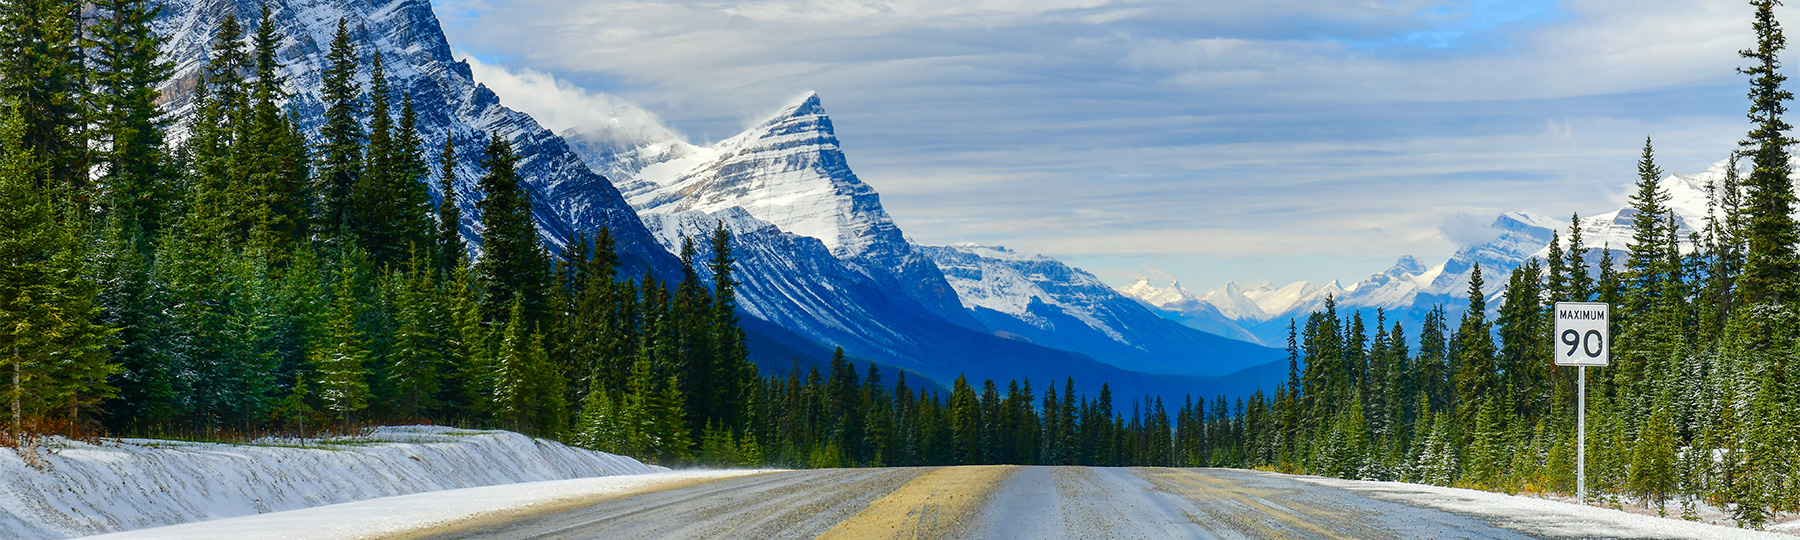 Photo of a Canadian Highway with a mountain backdrop